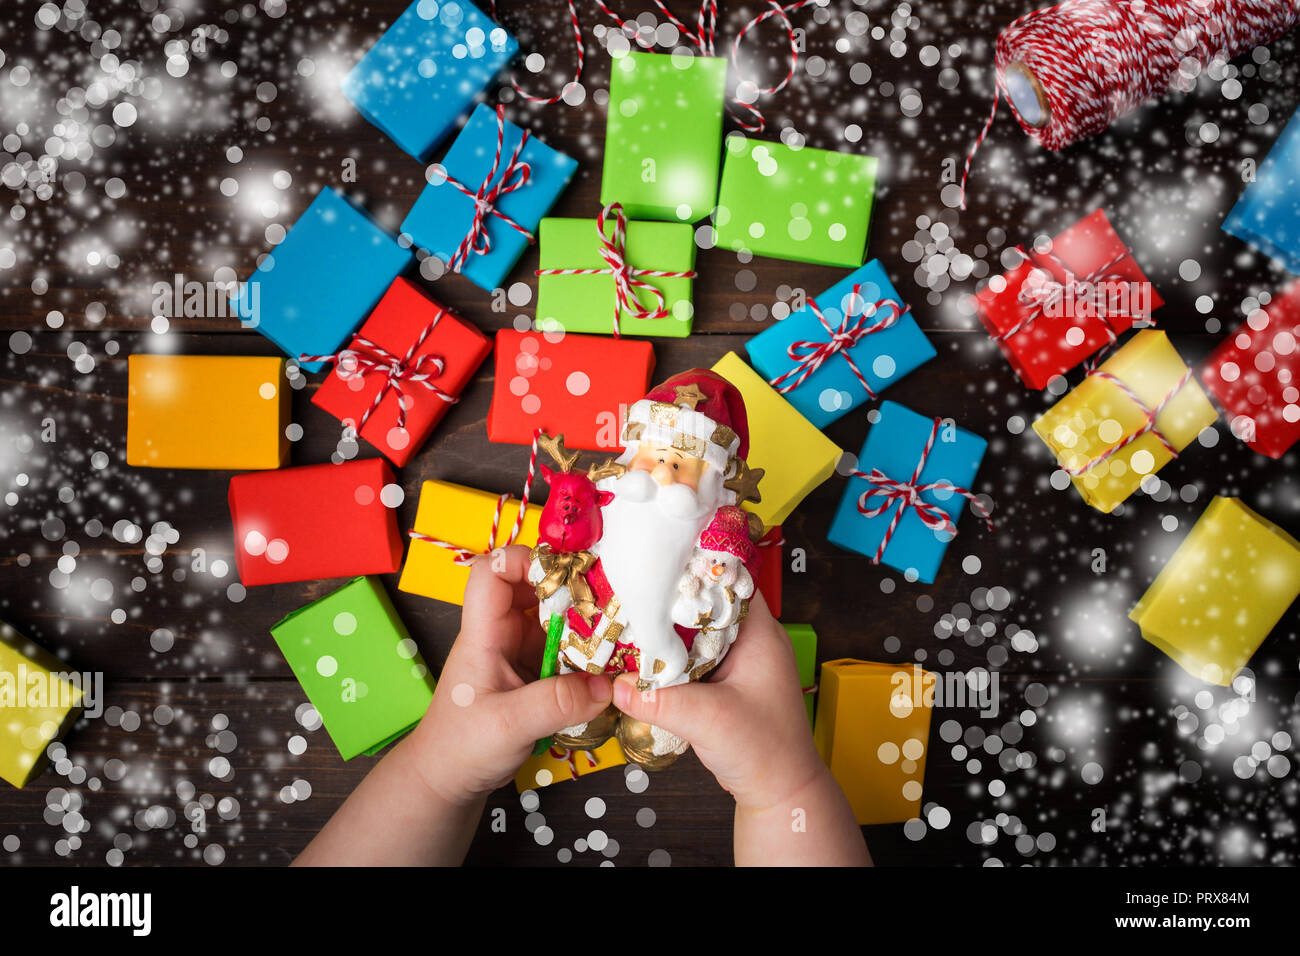 Colorful Christmas Background For Kids.Christmas Magic Two Kids Hands Hold Santa Claus With Hope